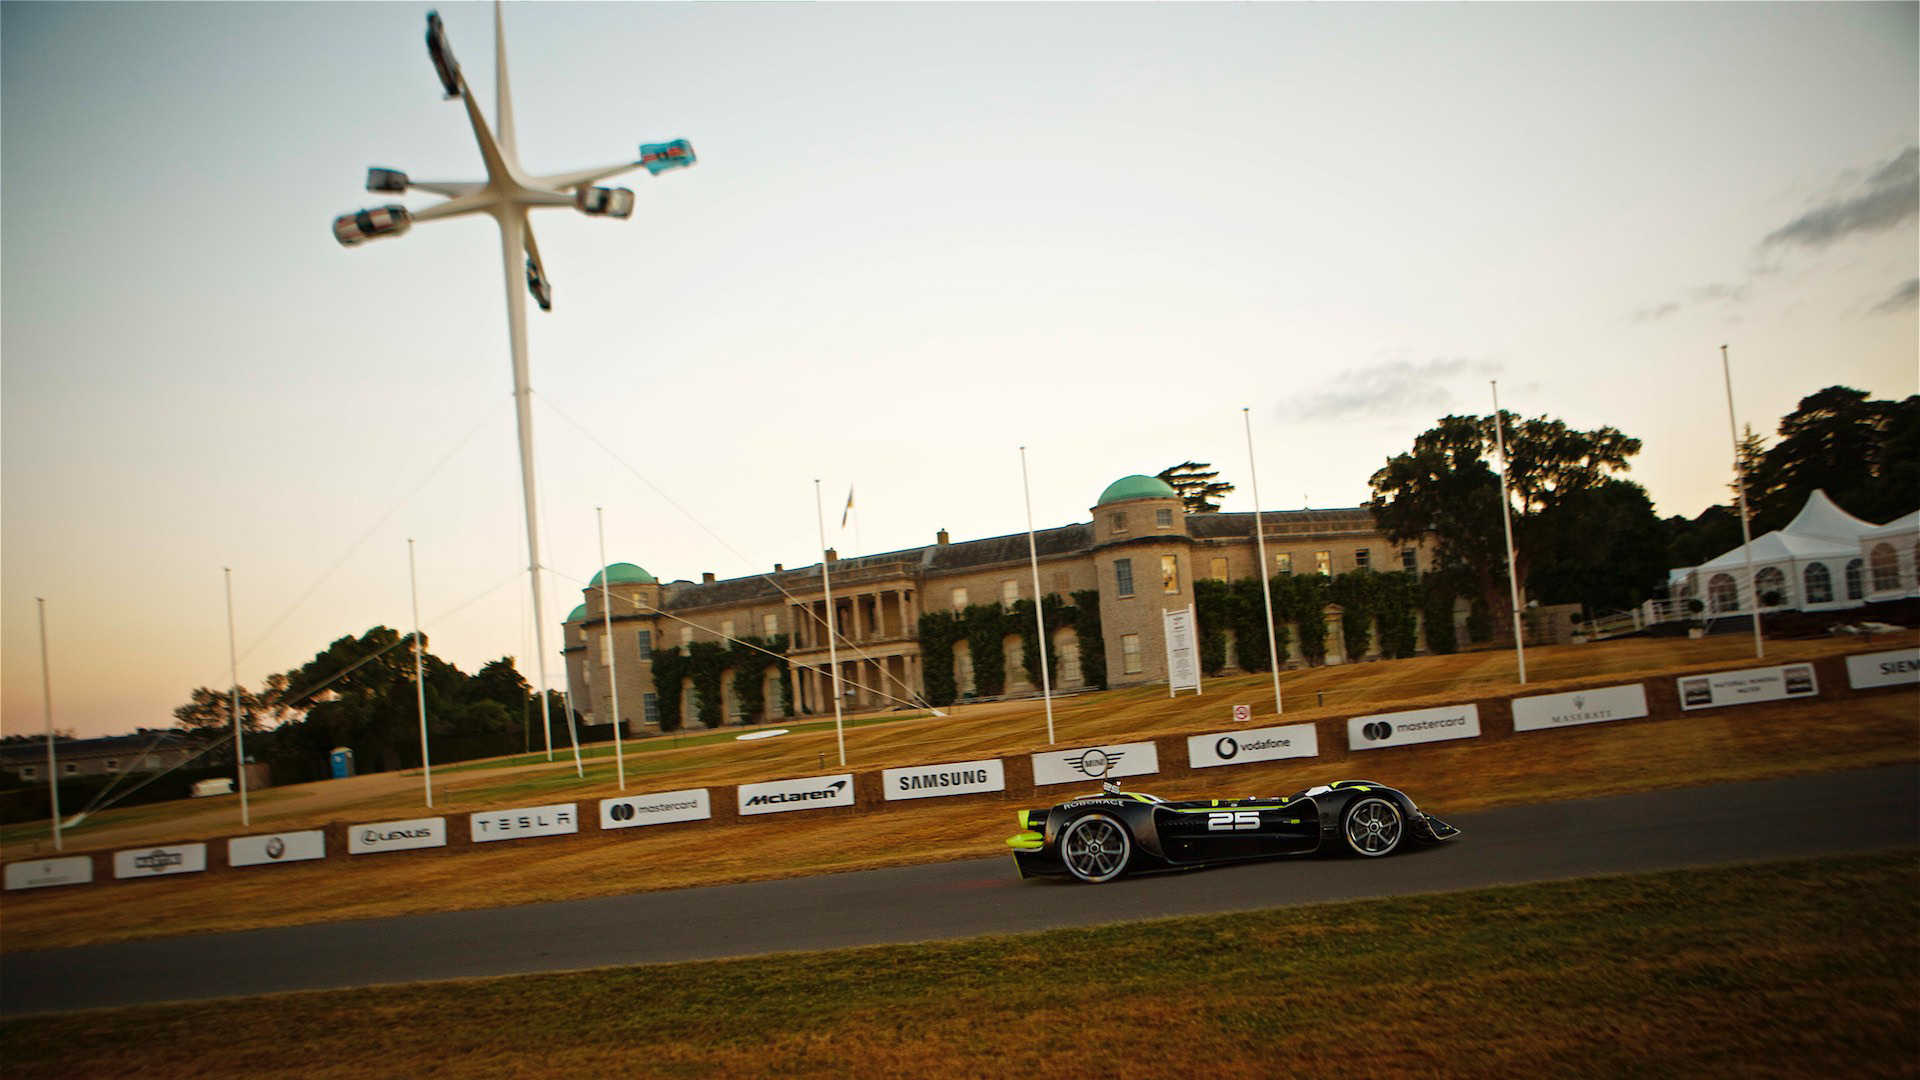 Siemens' autonomous 1965 Mustang will attempt the Goodwood hill climb